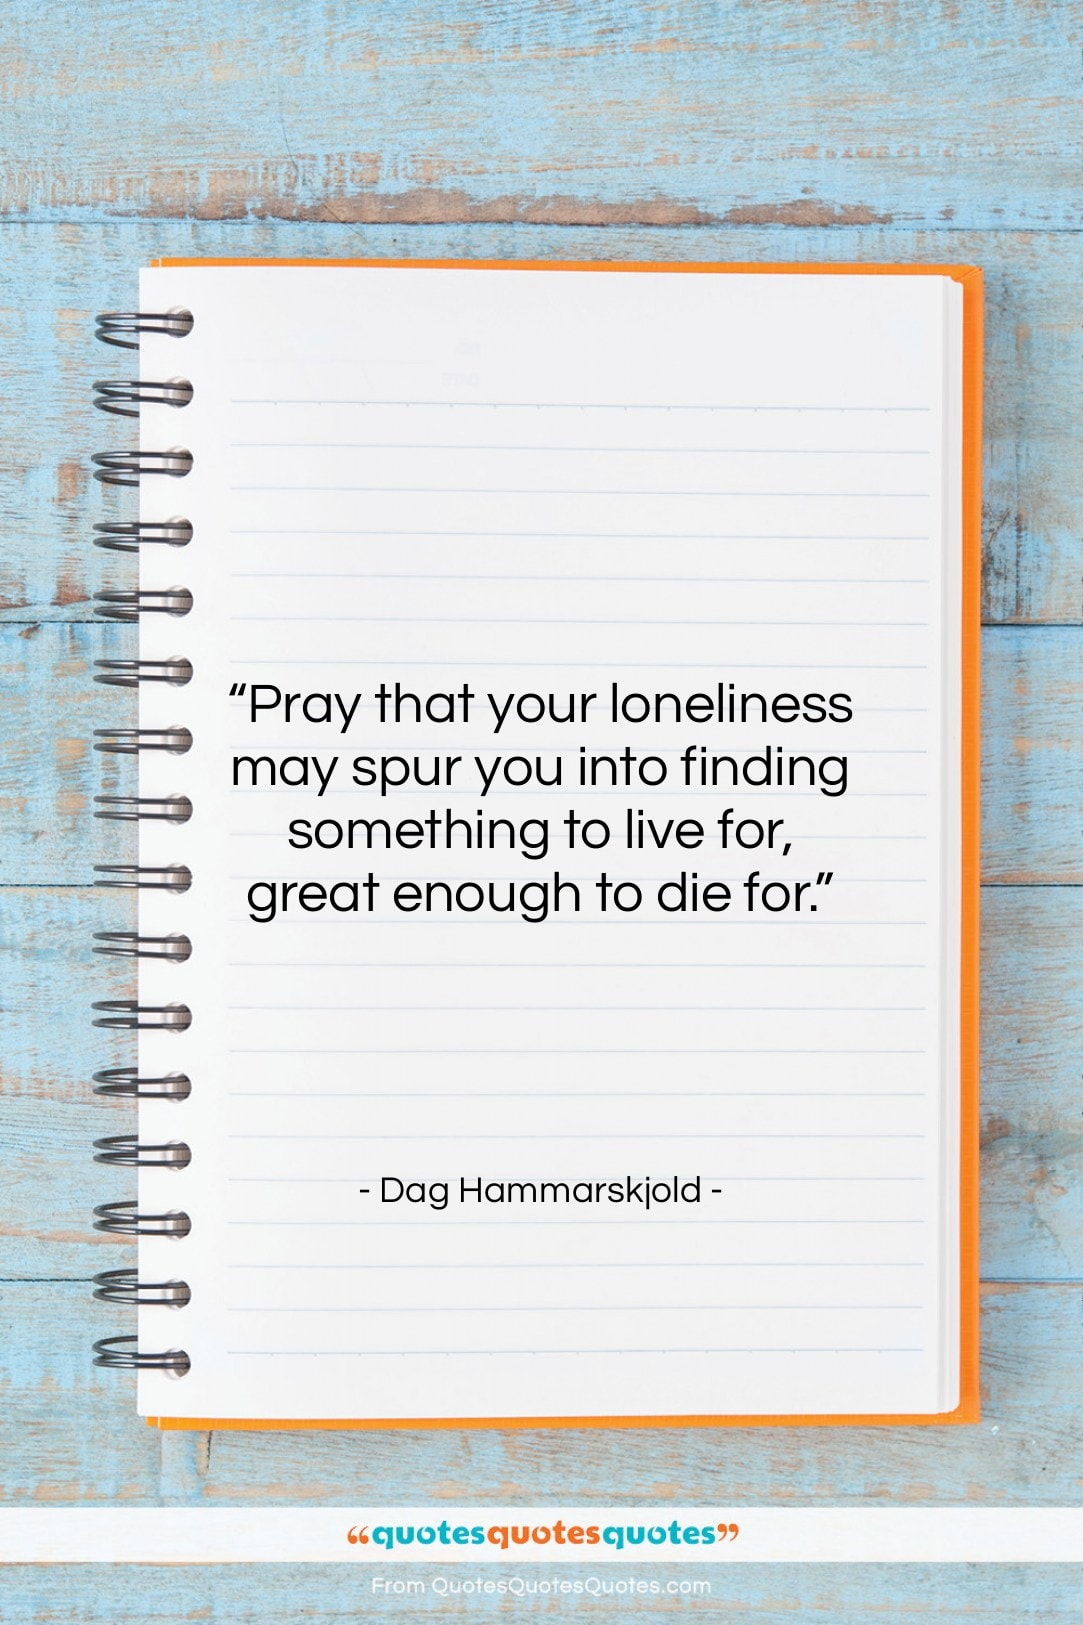 """Dag Hammarskjold quote: """"Pray that your loneliness may spur you…""""- at QuotesQuotesQuotes.com"""